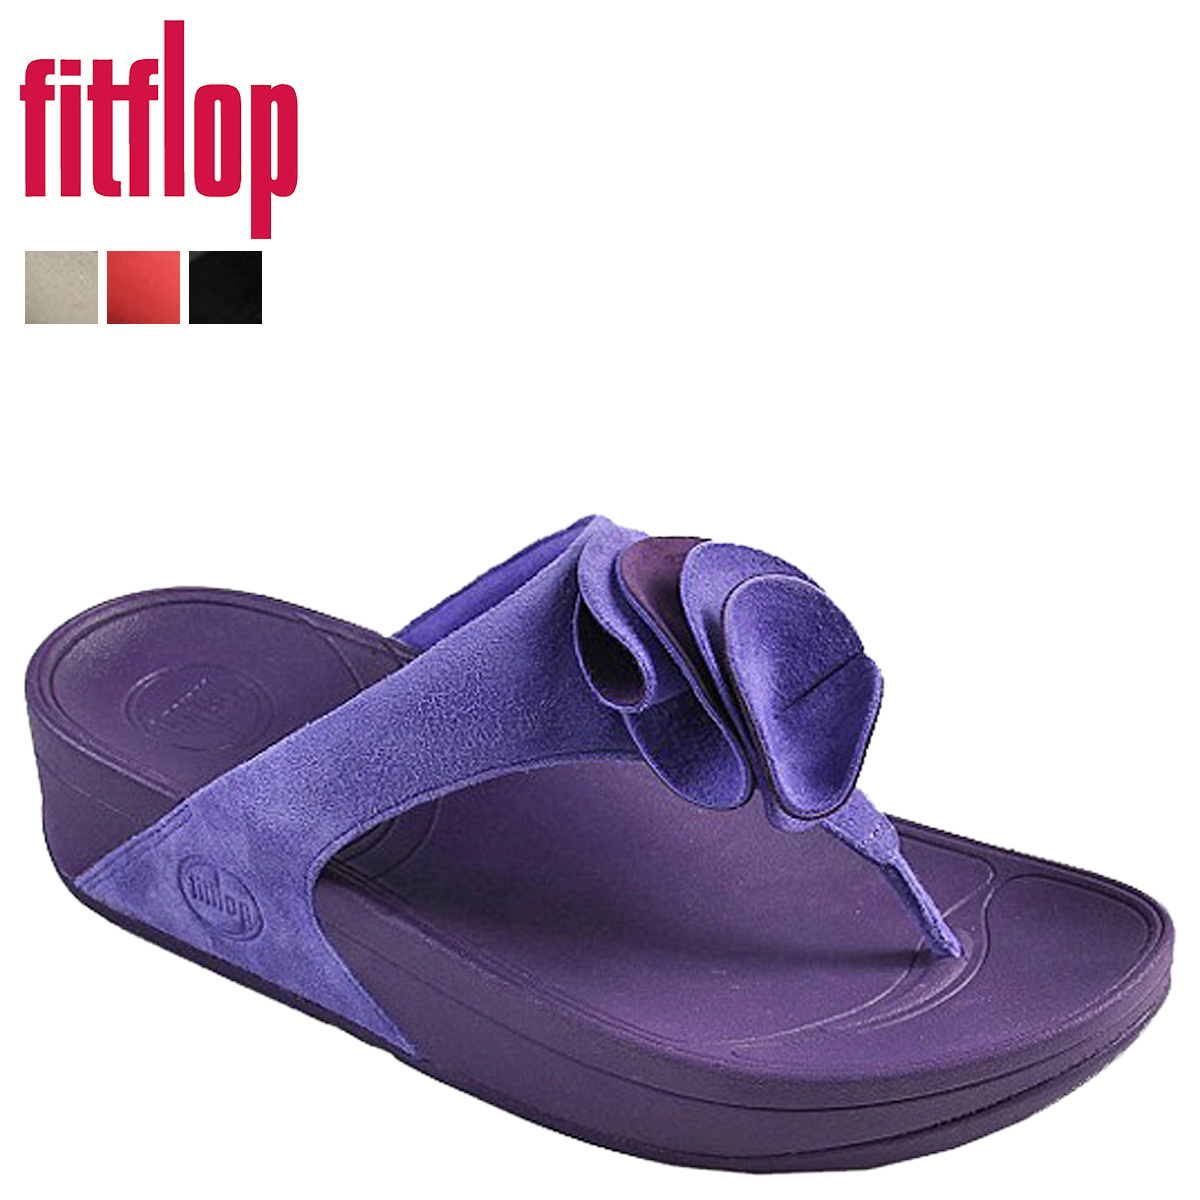 Fit flops FitFlop Sandals 293-001 293-068 293-139 293-258 suede Womens Yoko